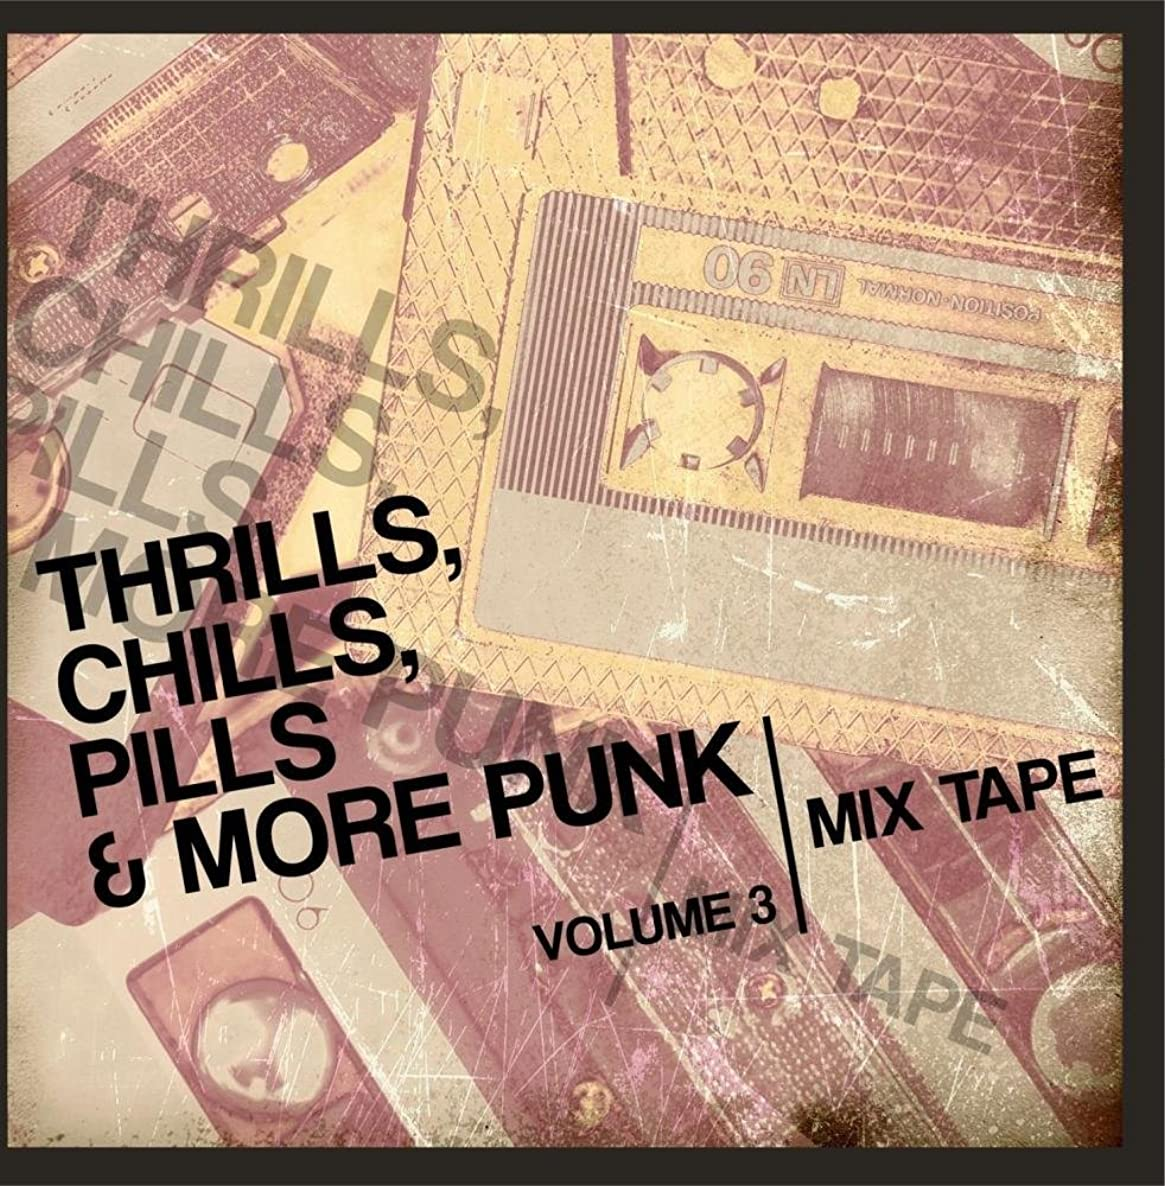 Thrills, Chills, Pills & More Punk: Mix Tape, Vol. 3